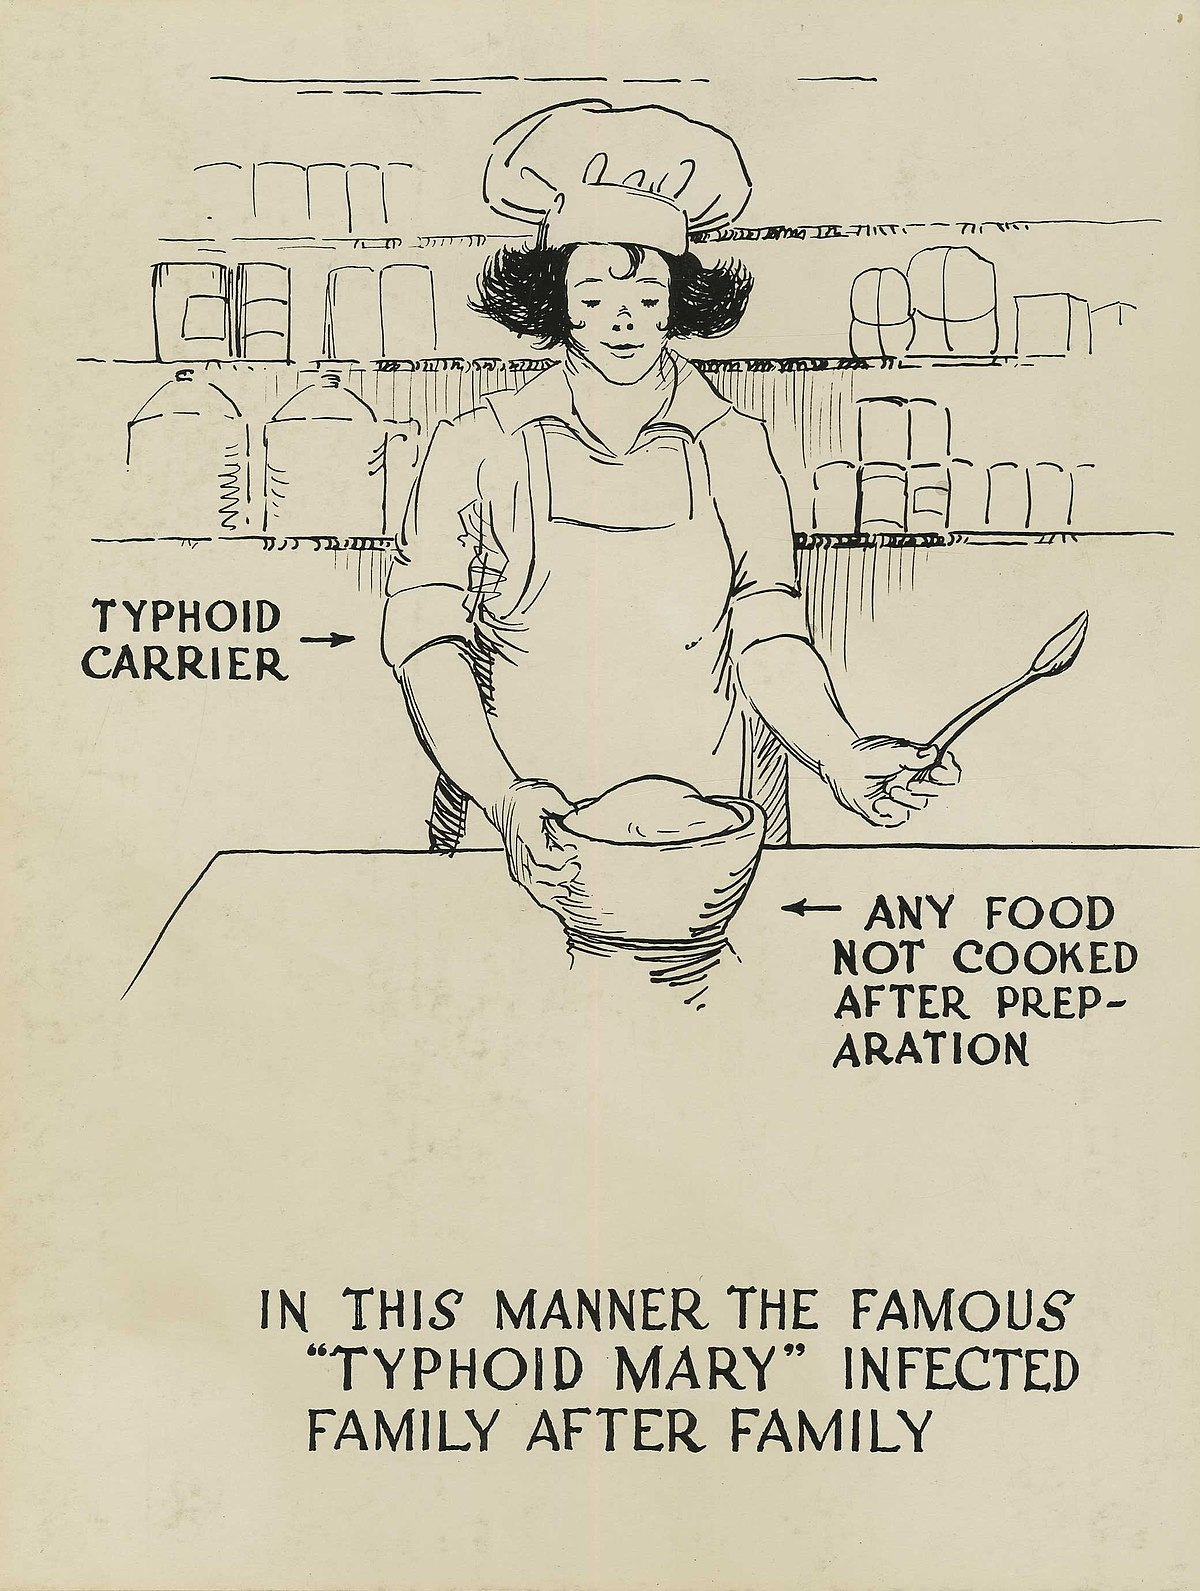 Typhoid carrier polluting food - a poster.jpg